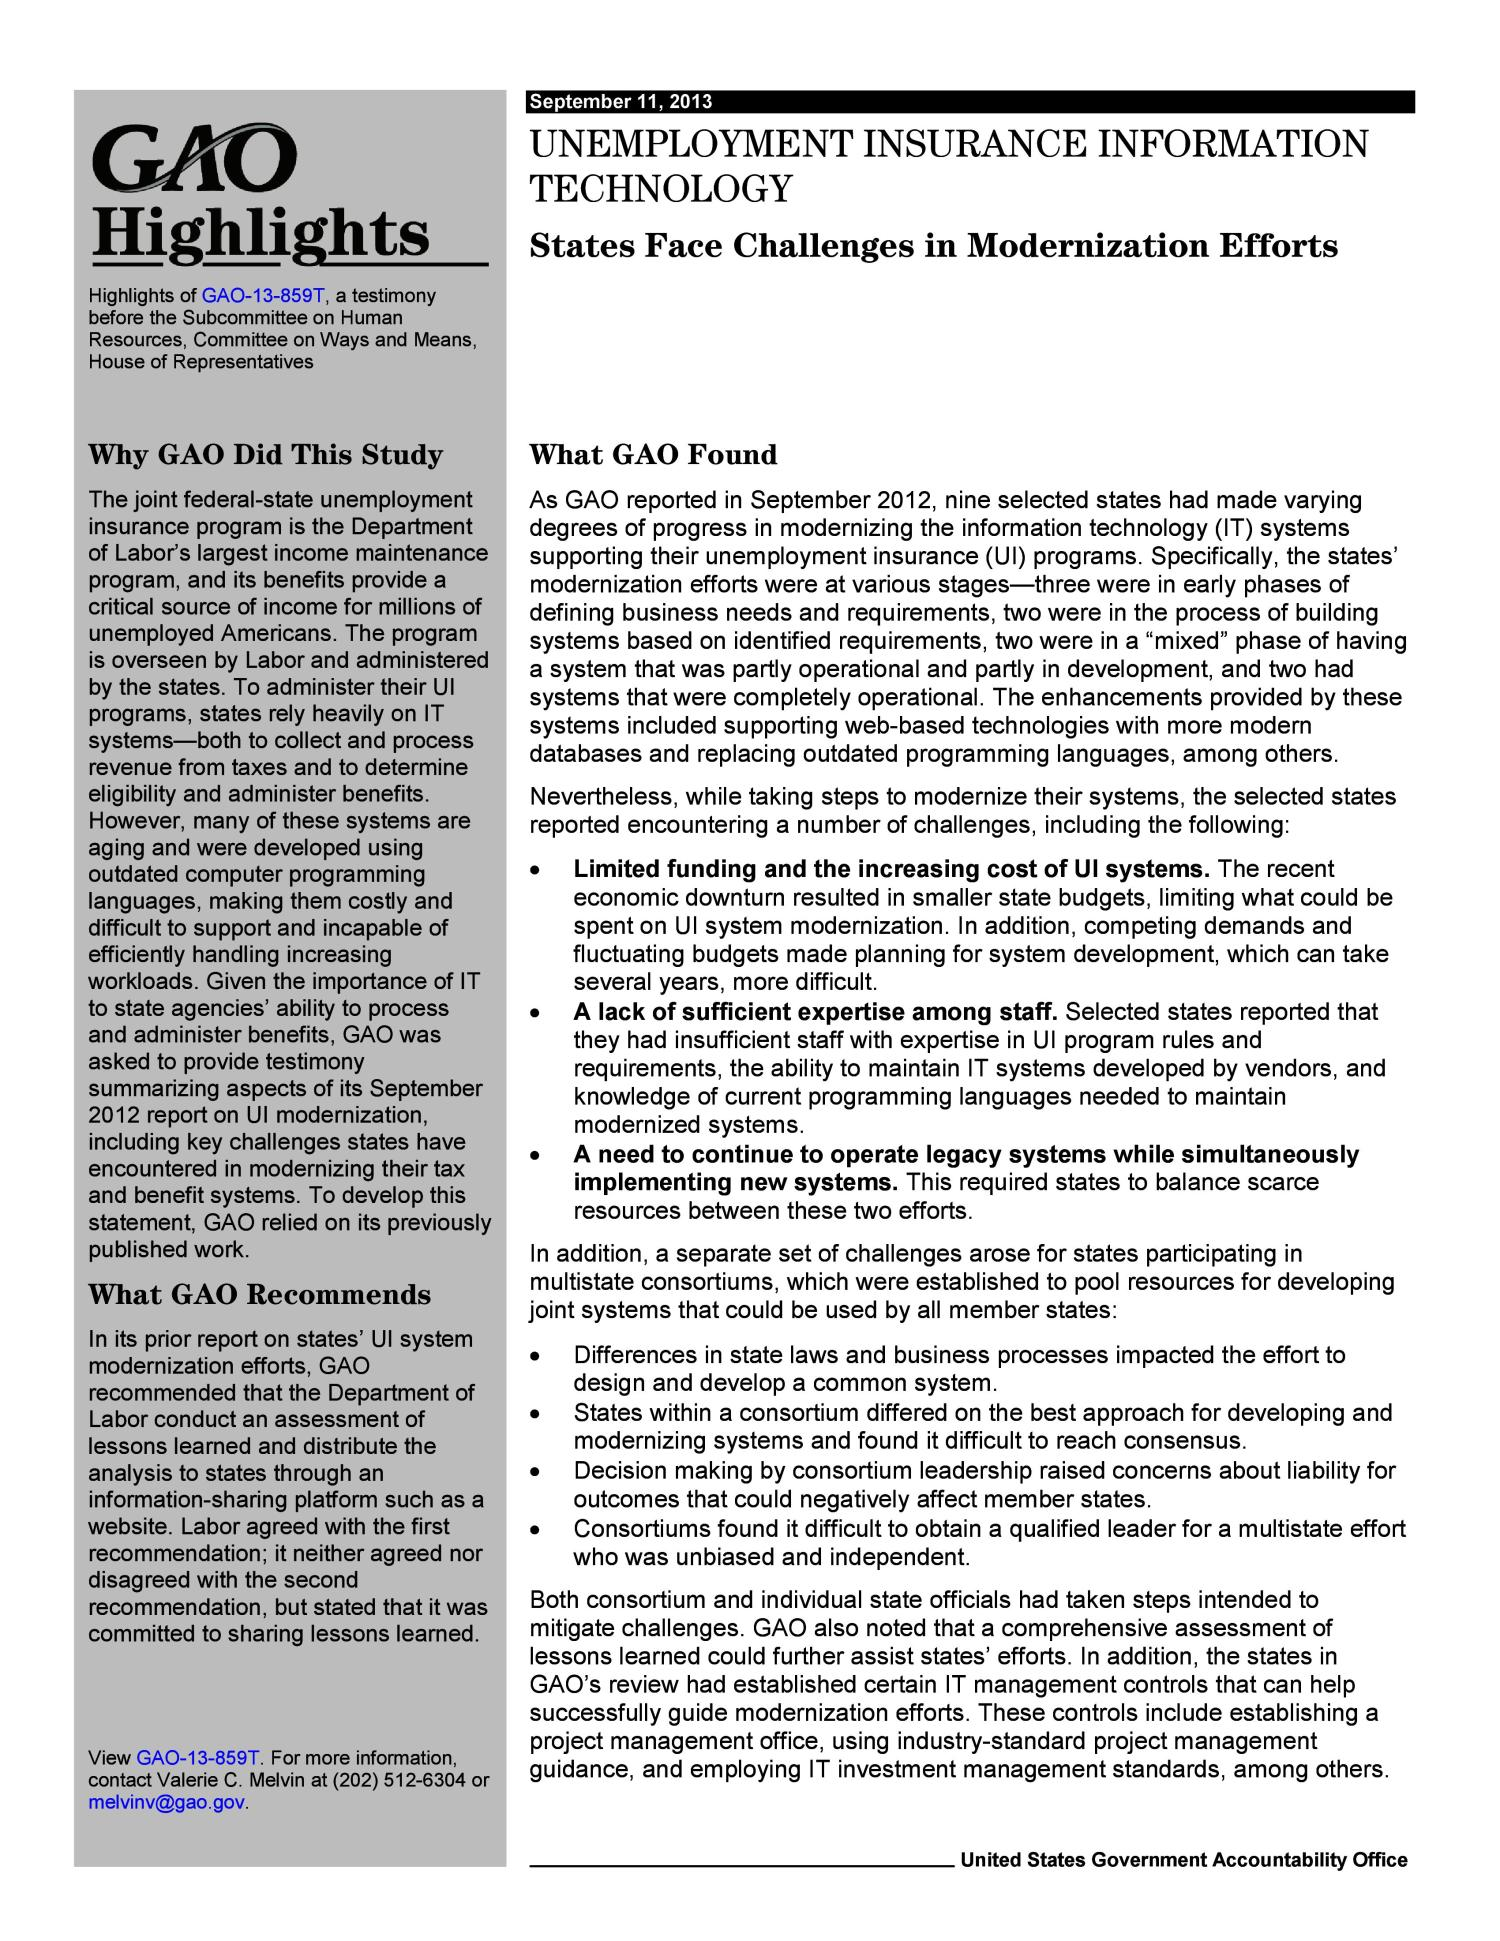 Unemployment Insurance Information Technology: States Face Challenges in Modernization Efforts                                                                                                      [Sequence #]: 2 of 12